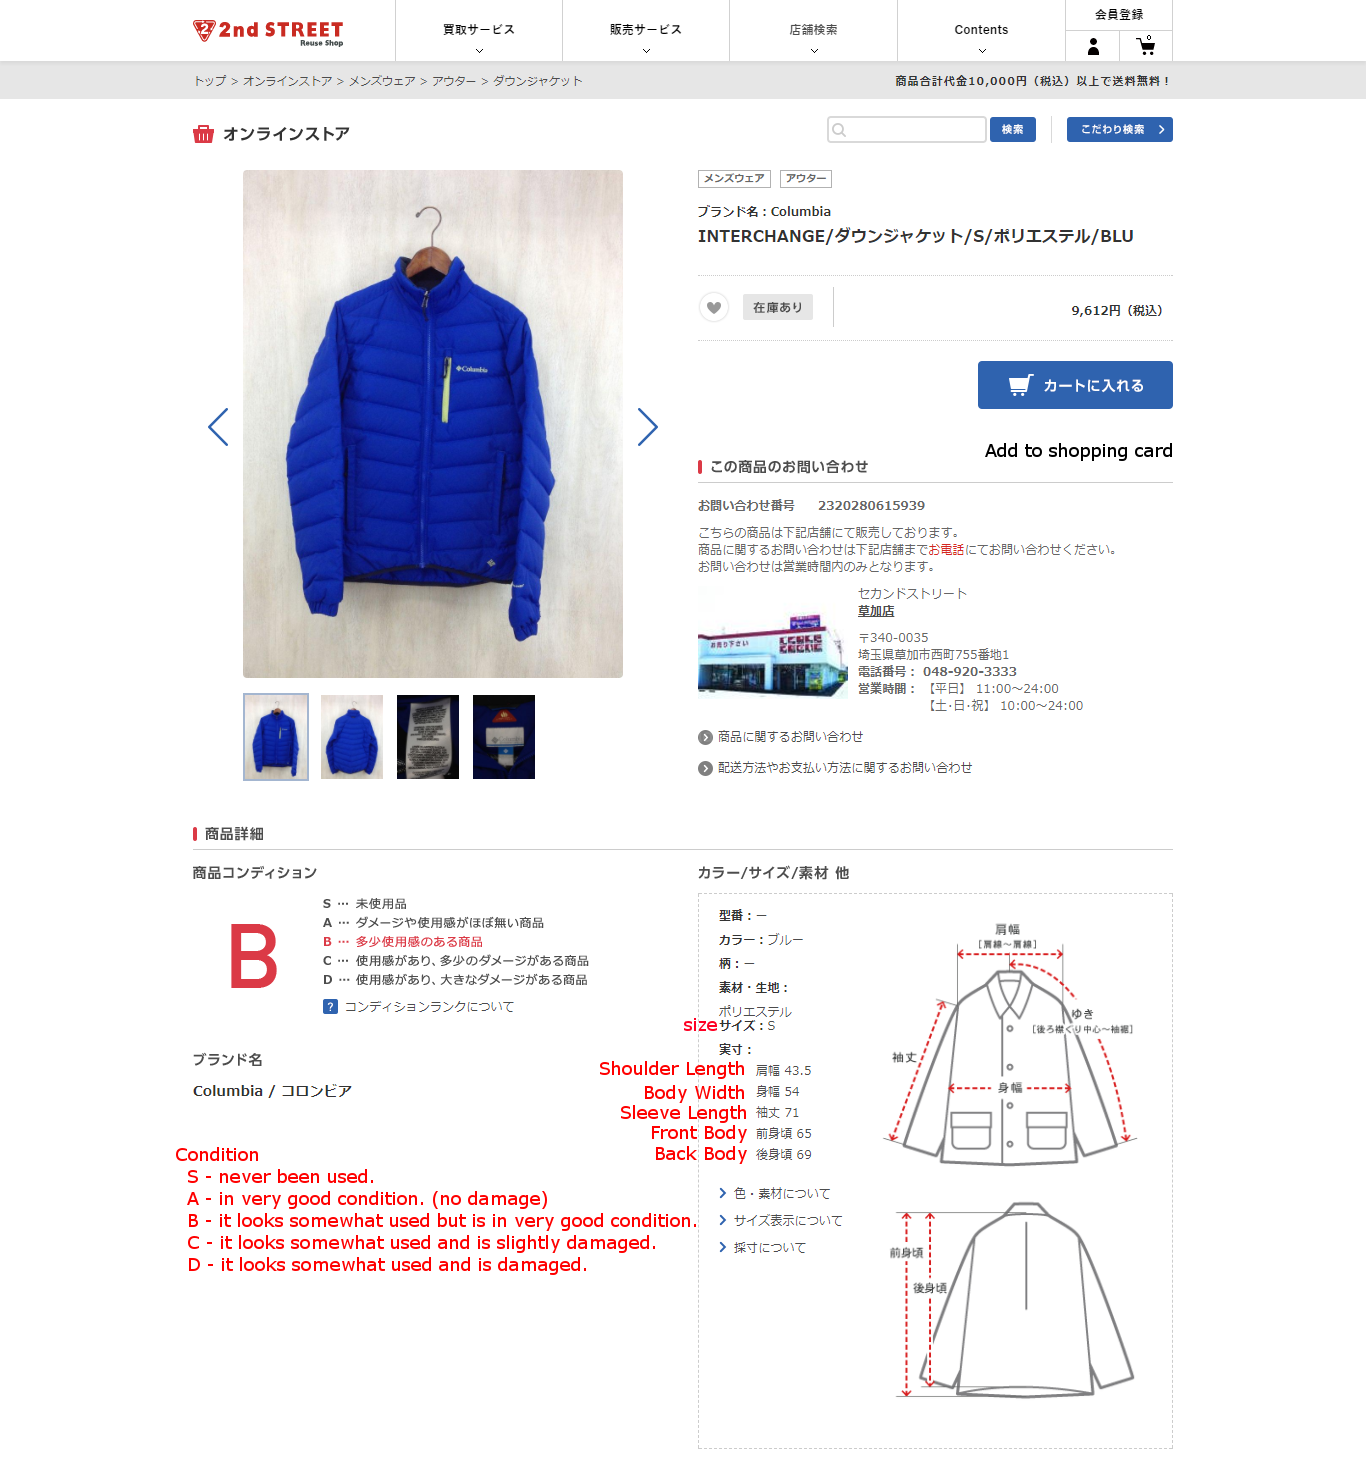 guide_for_shopping_on_2nd_street_online_details